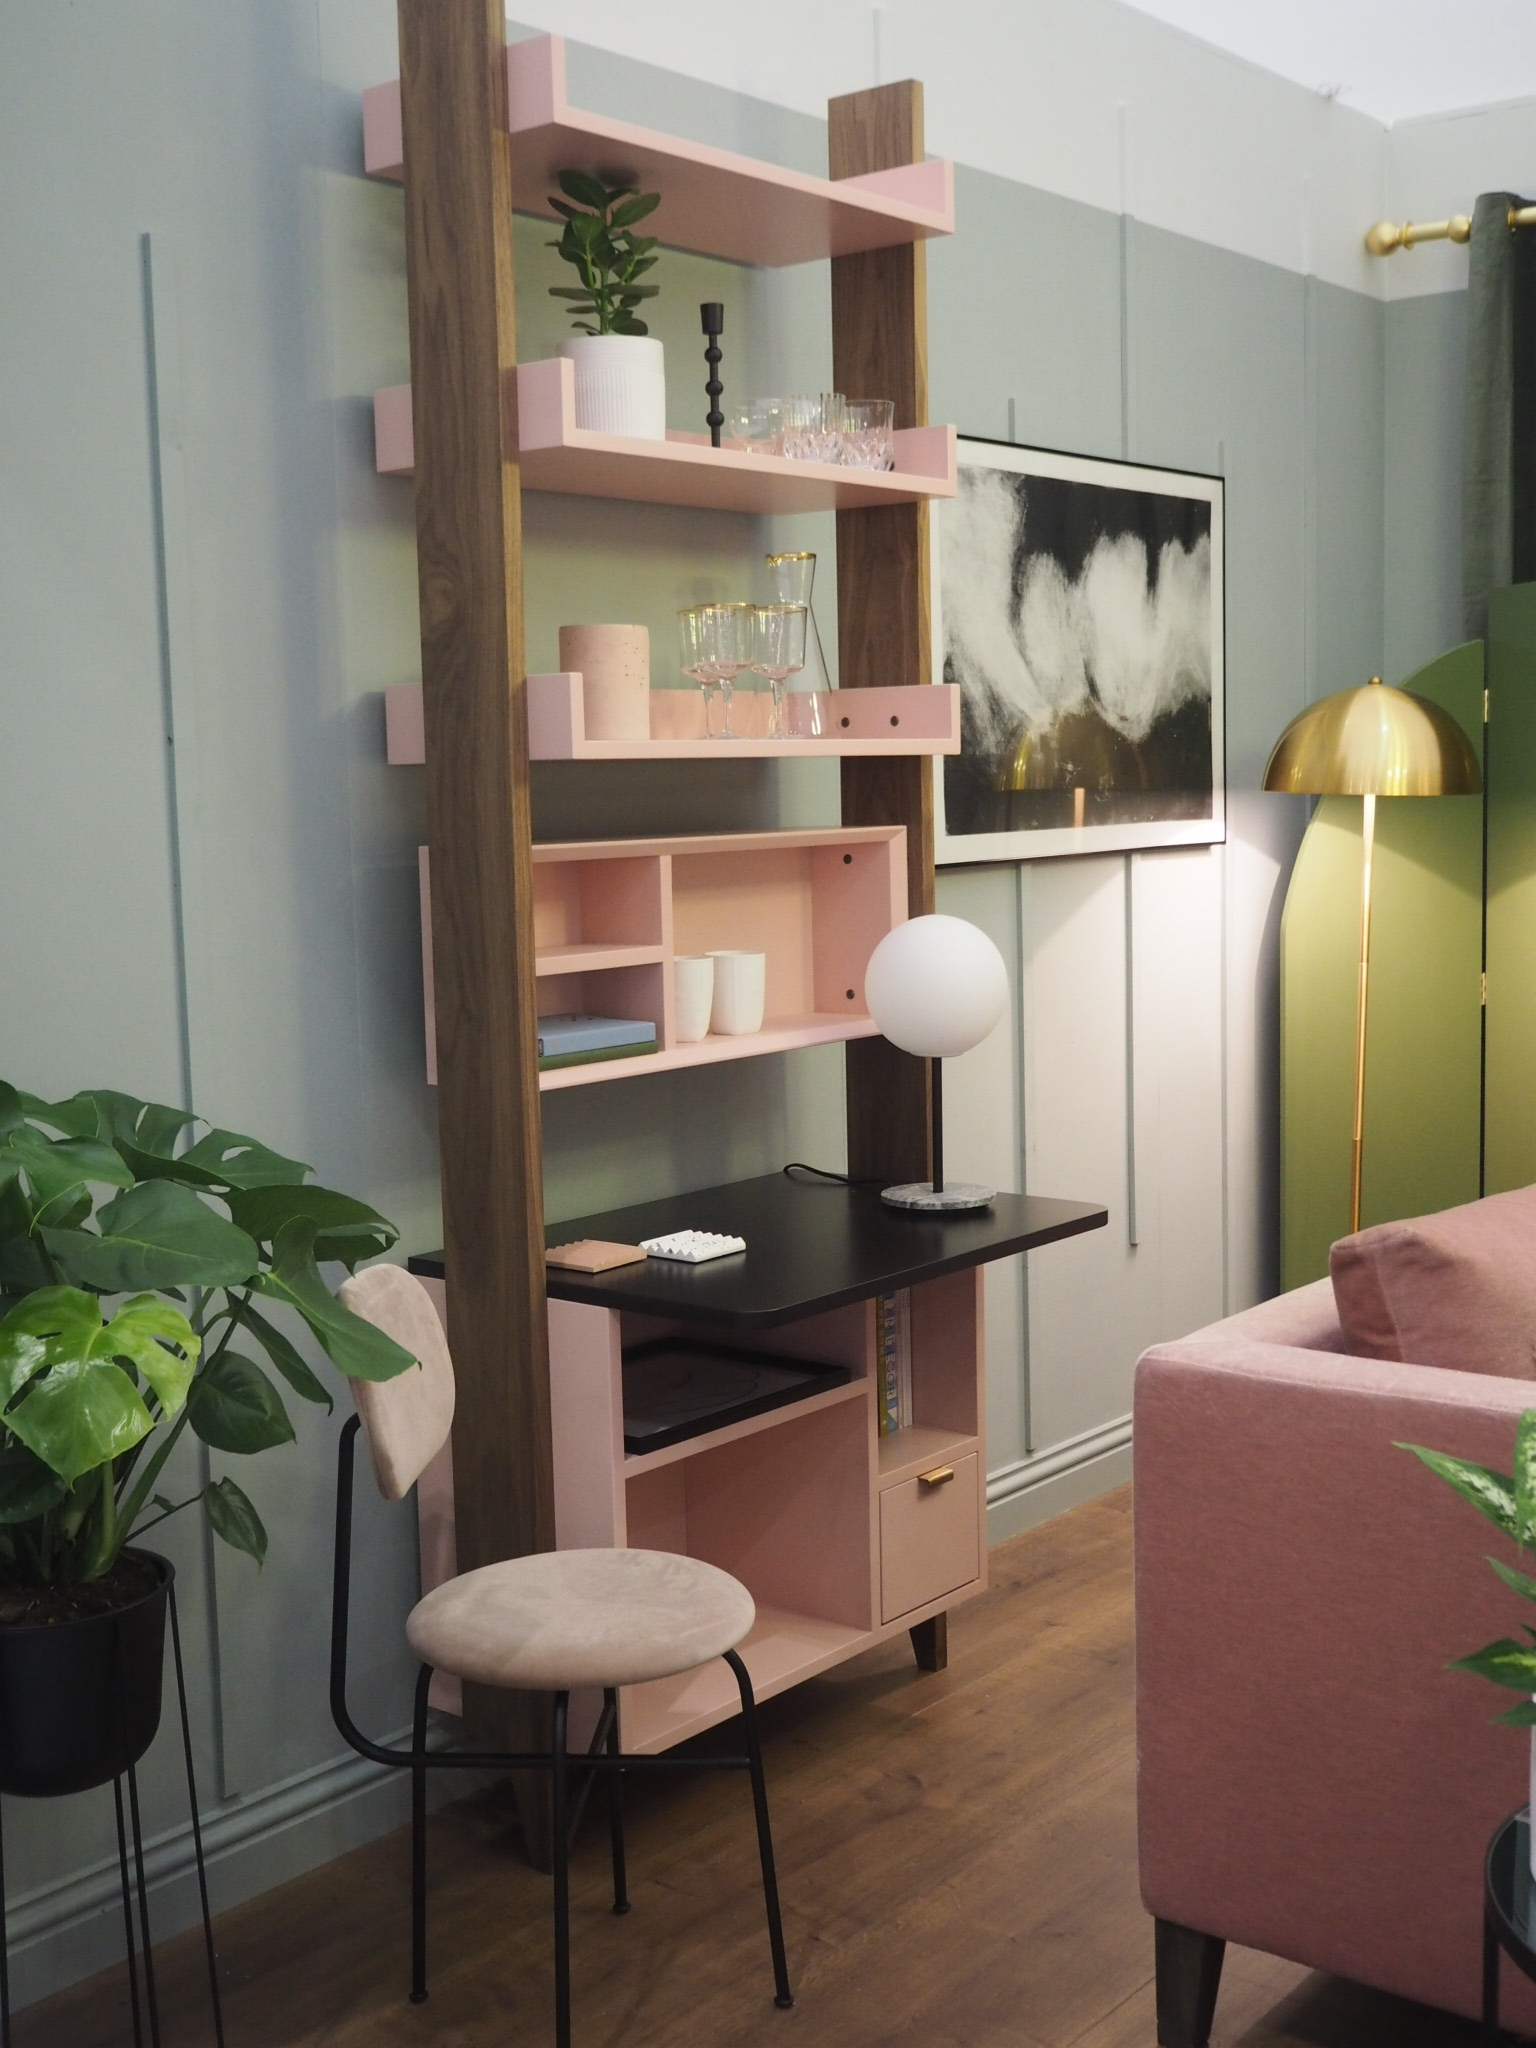 The beautifully styled work space